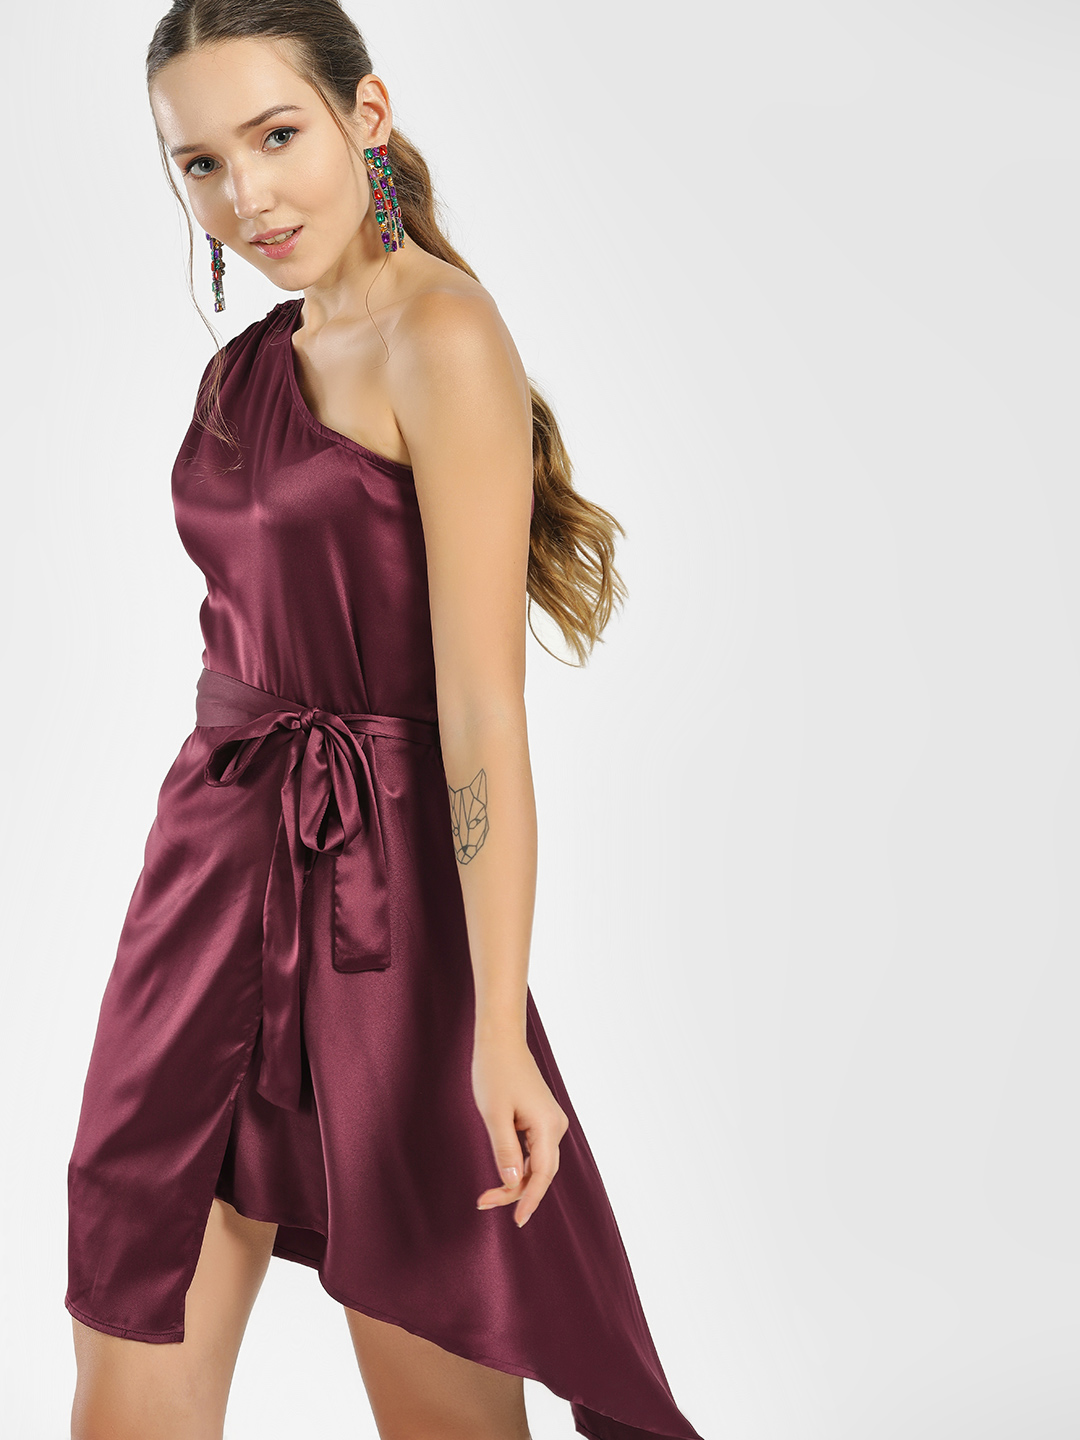 Street9 Purple One Shoulder Asymmetric Dress 1